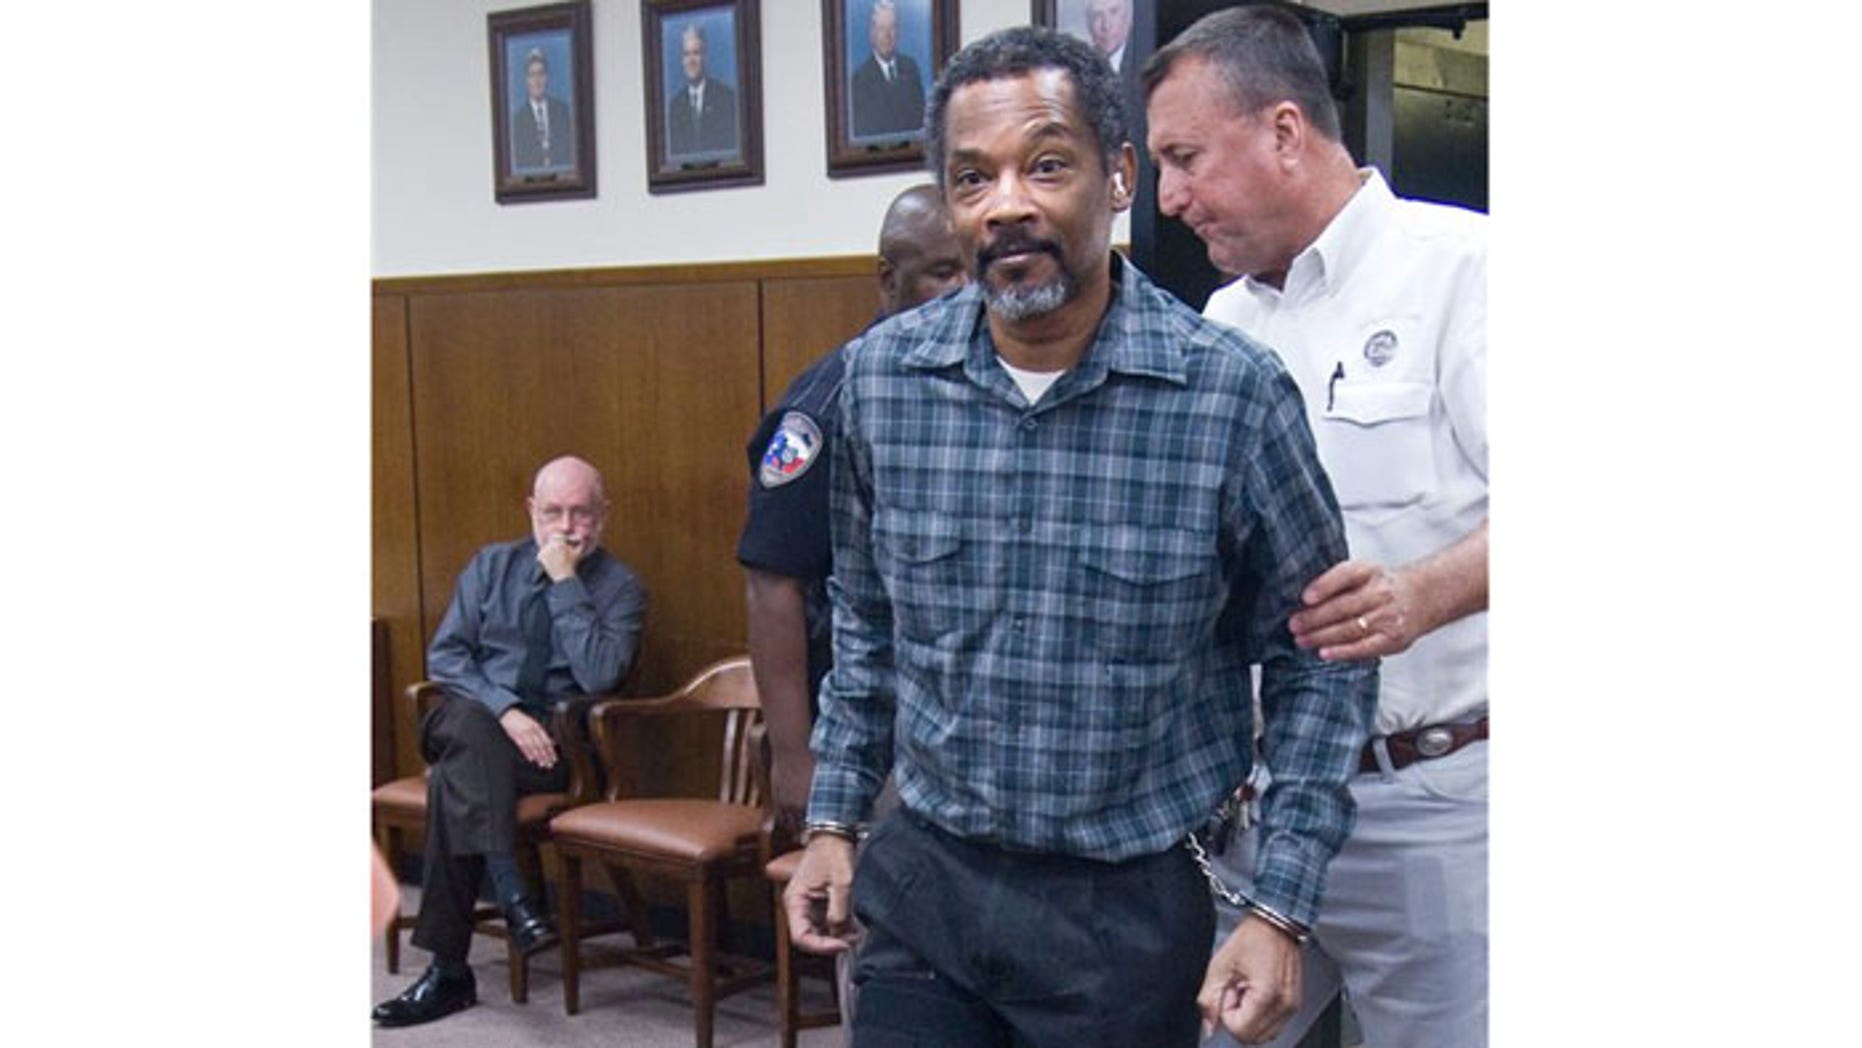 September 13: Defendant Billy Joe Harris enters the Jackson County courtroom in handcuffs and leg shackles in Edna, Texas.